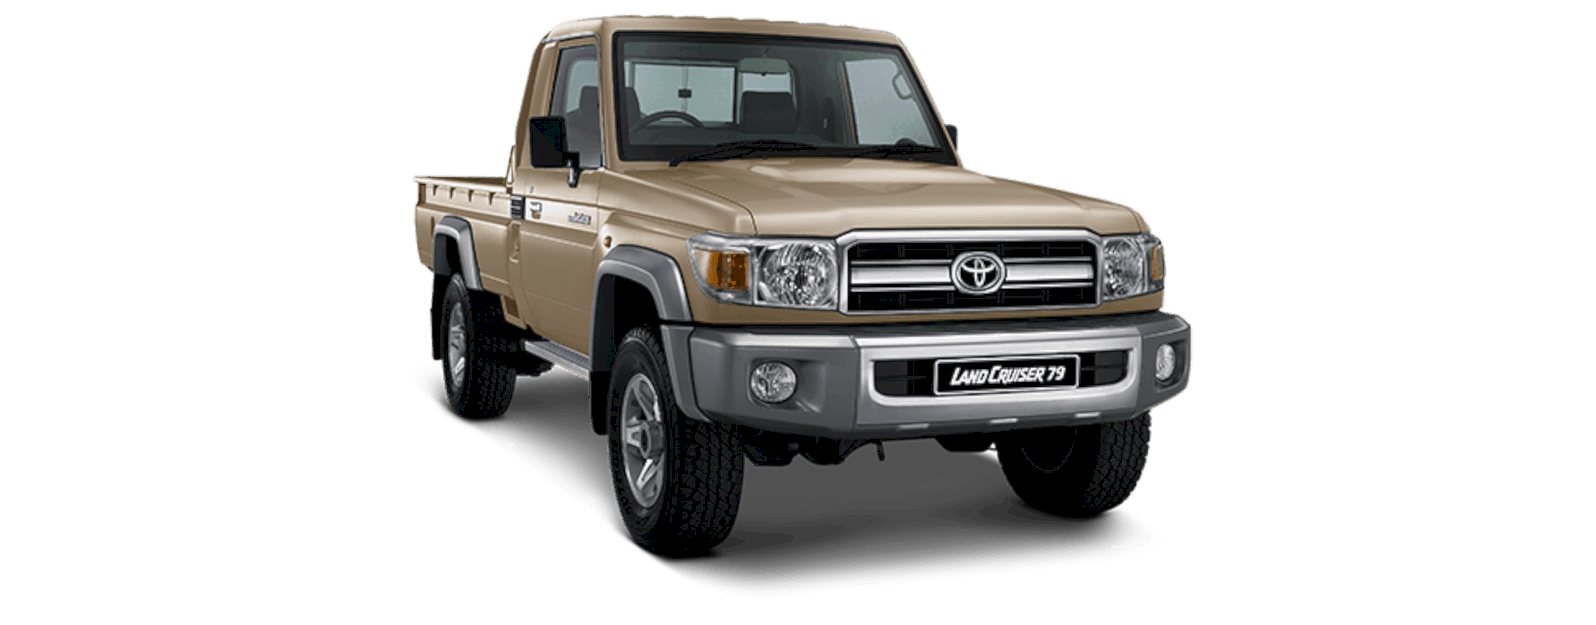 Toyota Land Cruiser 70 Series Namib 3